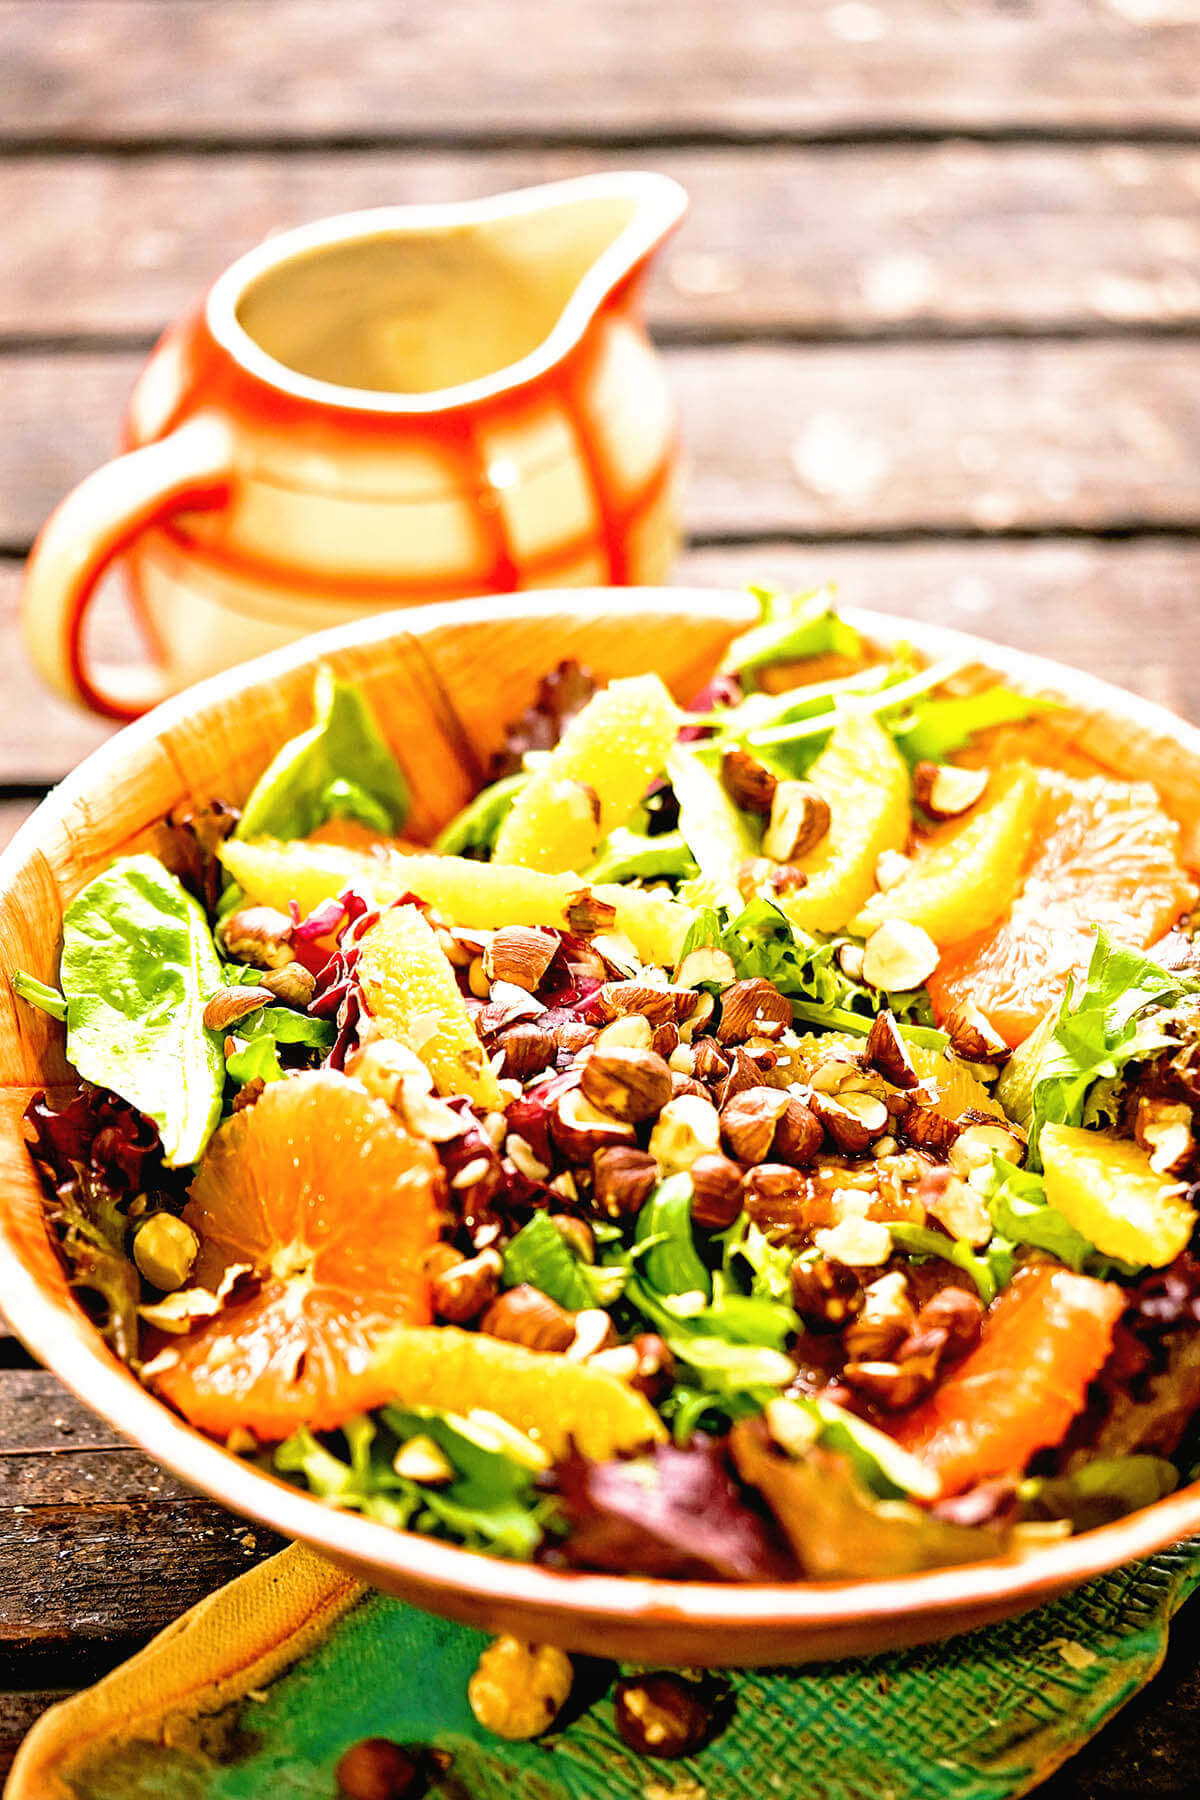 Citrus Salad Recipe in wooden bowl with salad dressing on the side.